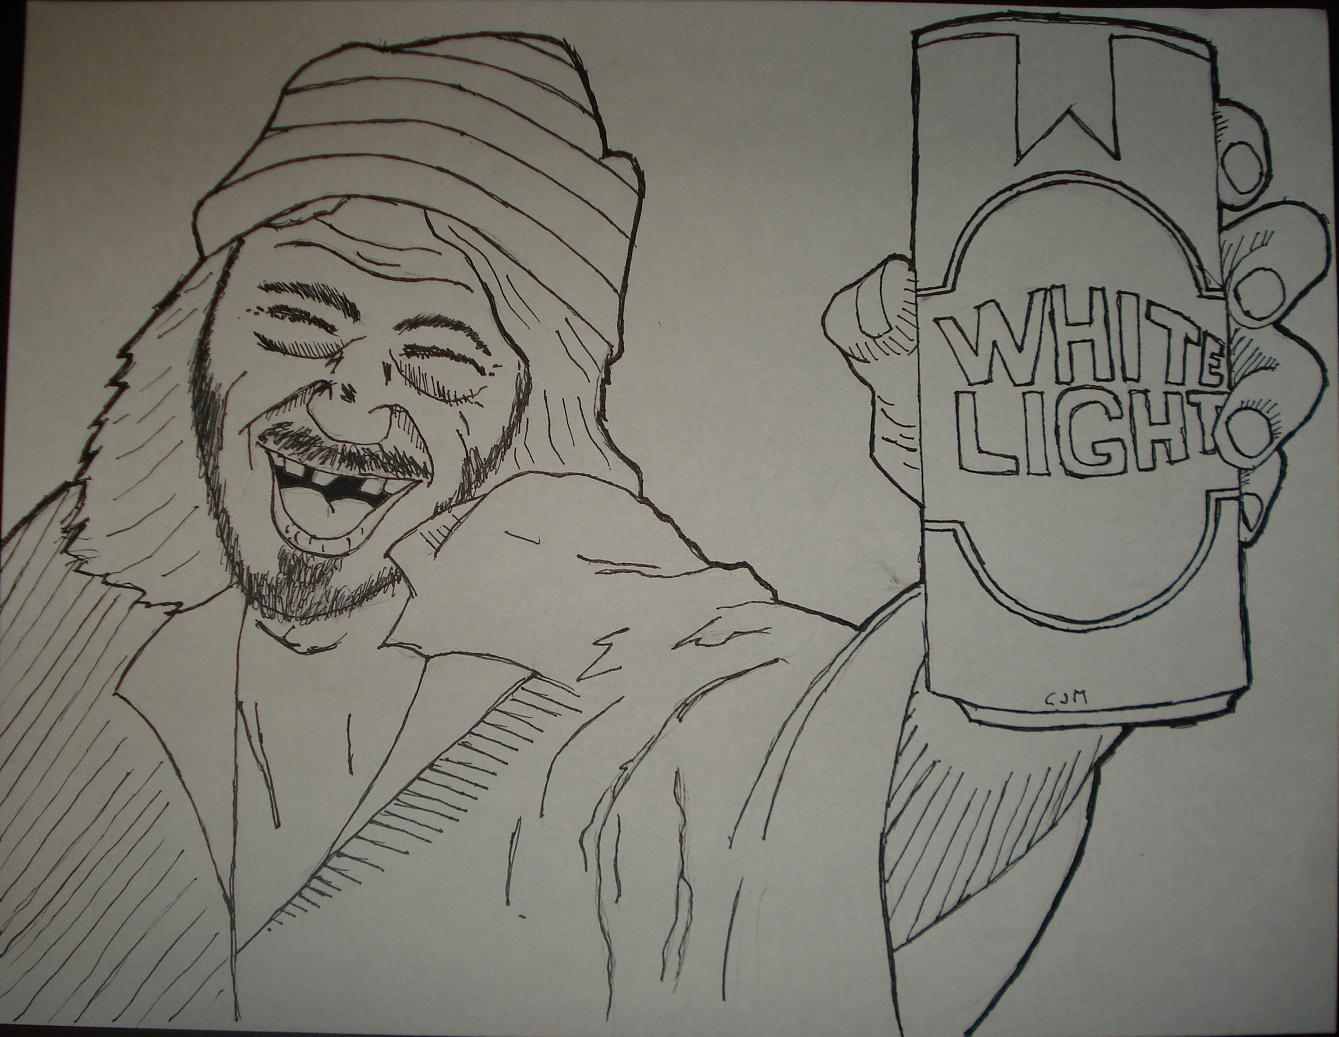 Whit light